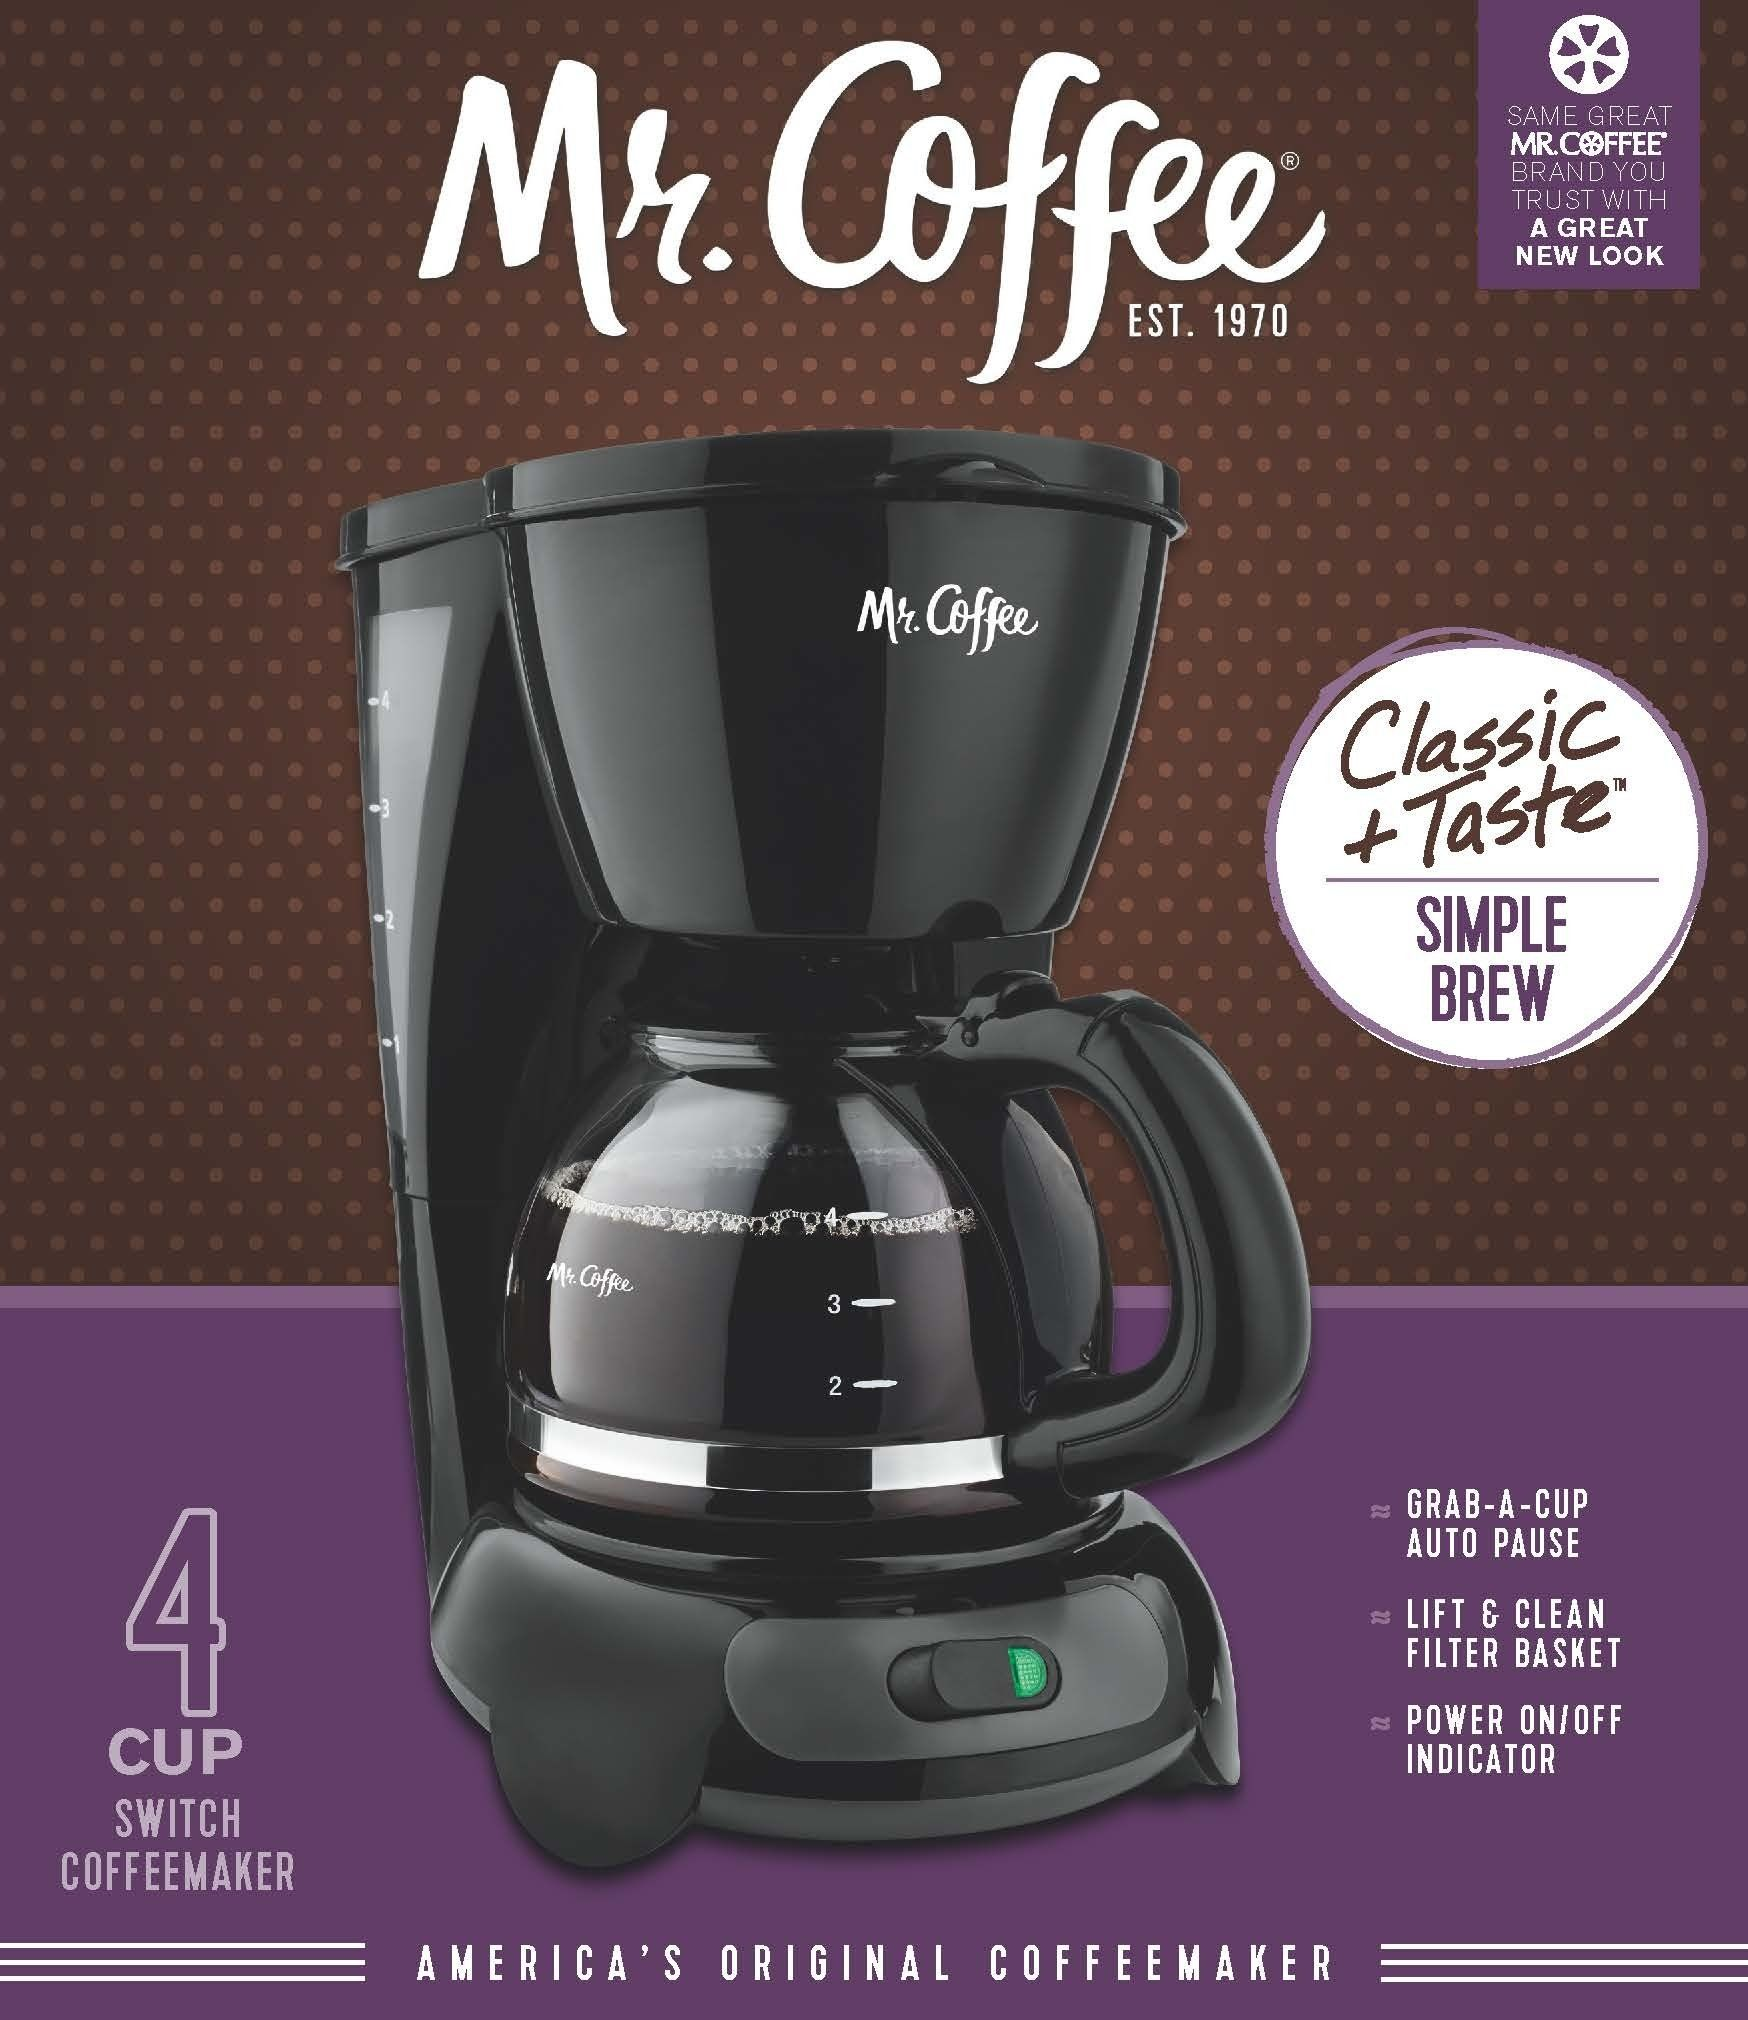 Mr. Coffee 4Cup Switch Coffee Maker Black Be sure to